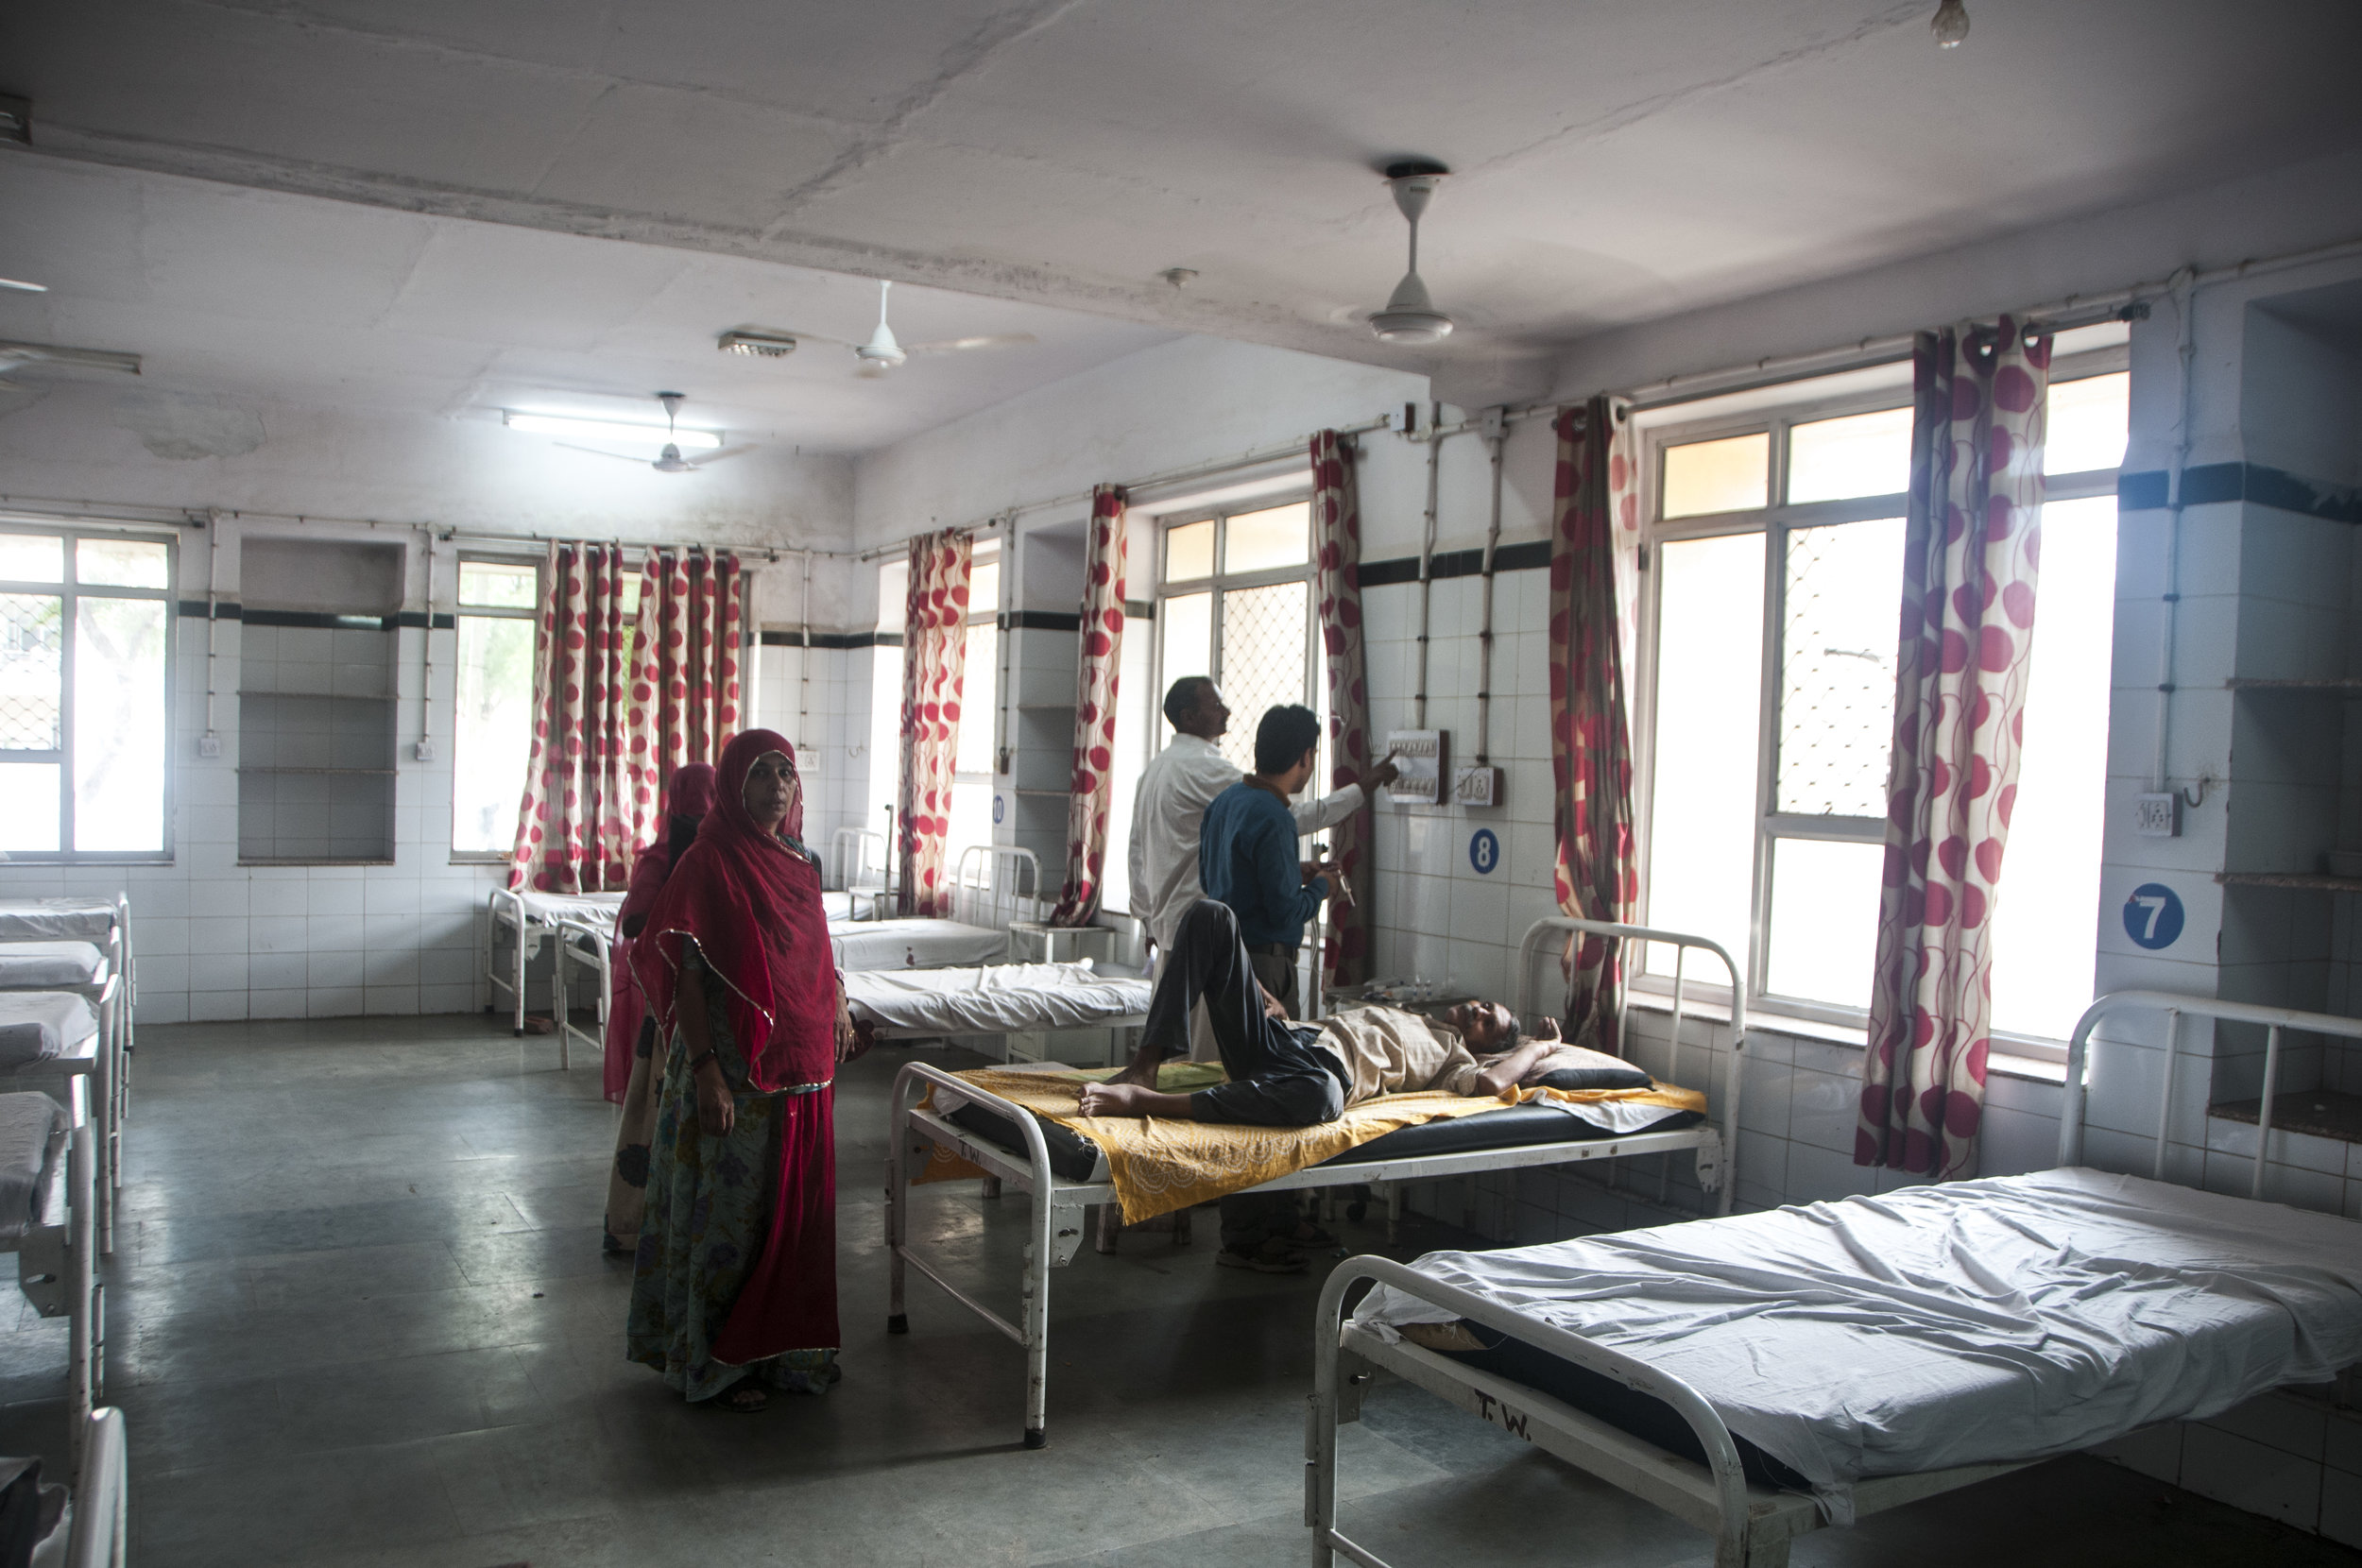 The wife and daughter wait by the newly admitted patient in the General Ward of Chittorgarh District Hospital.